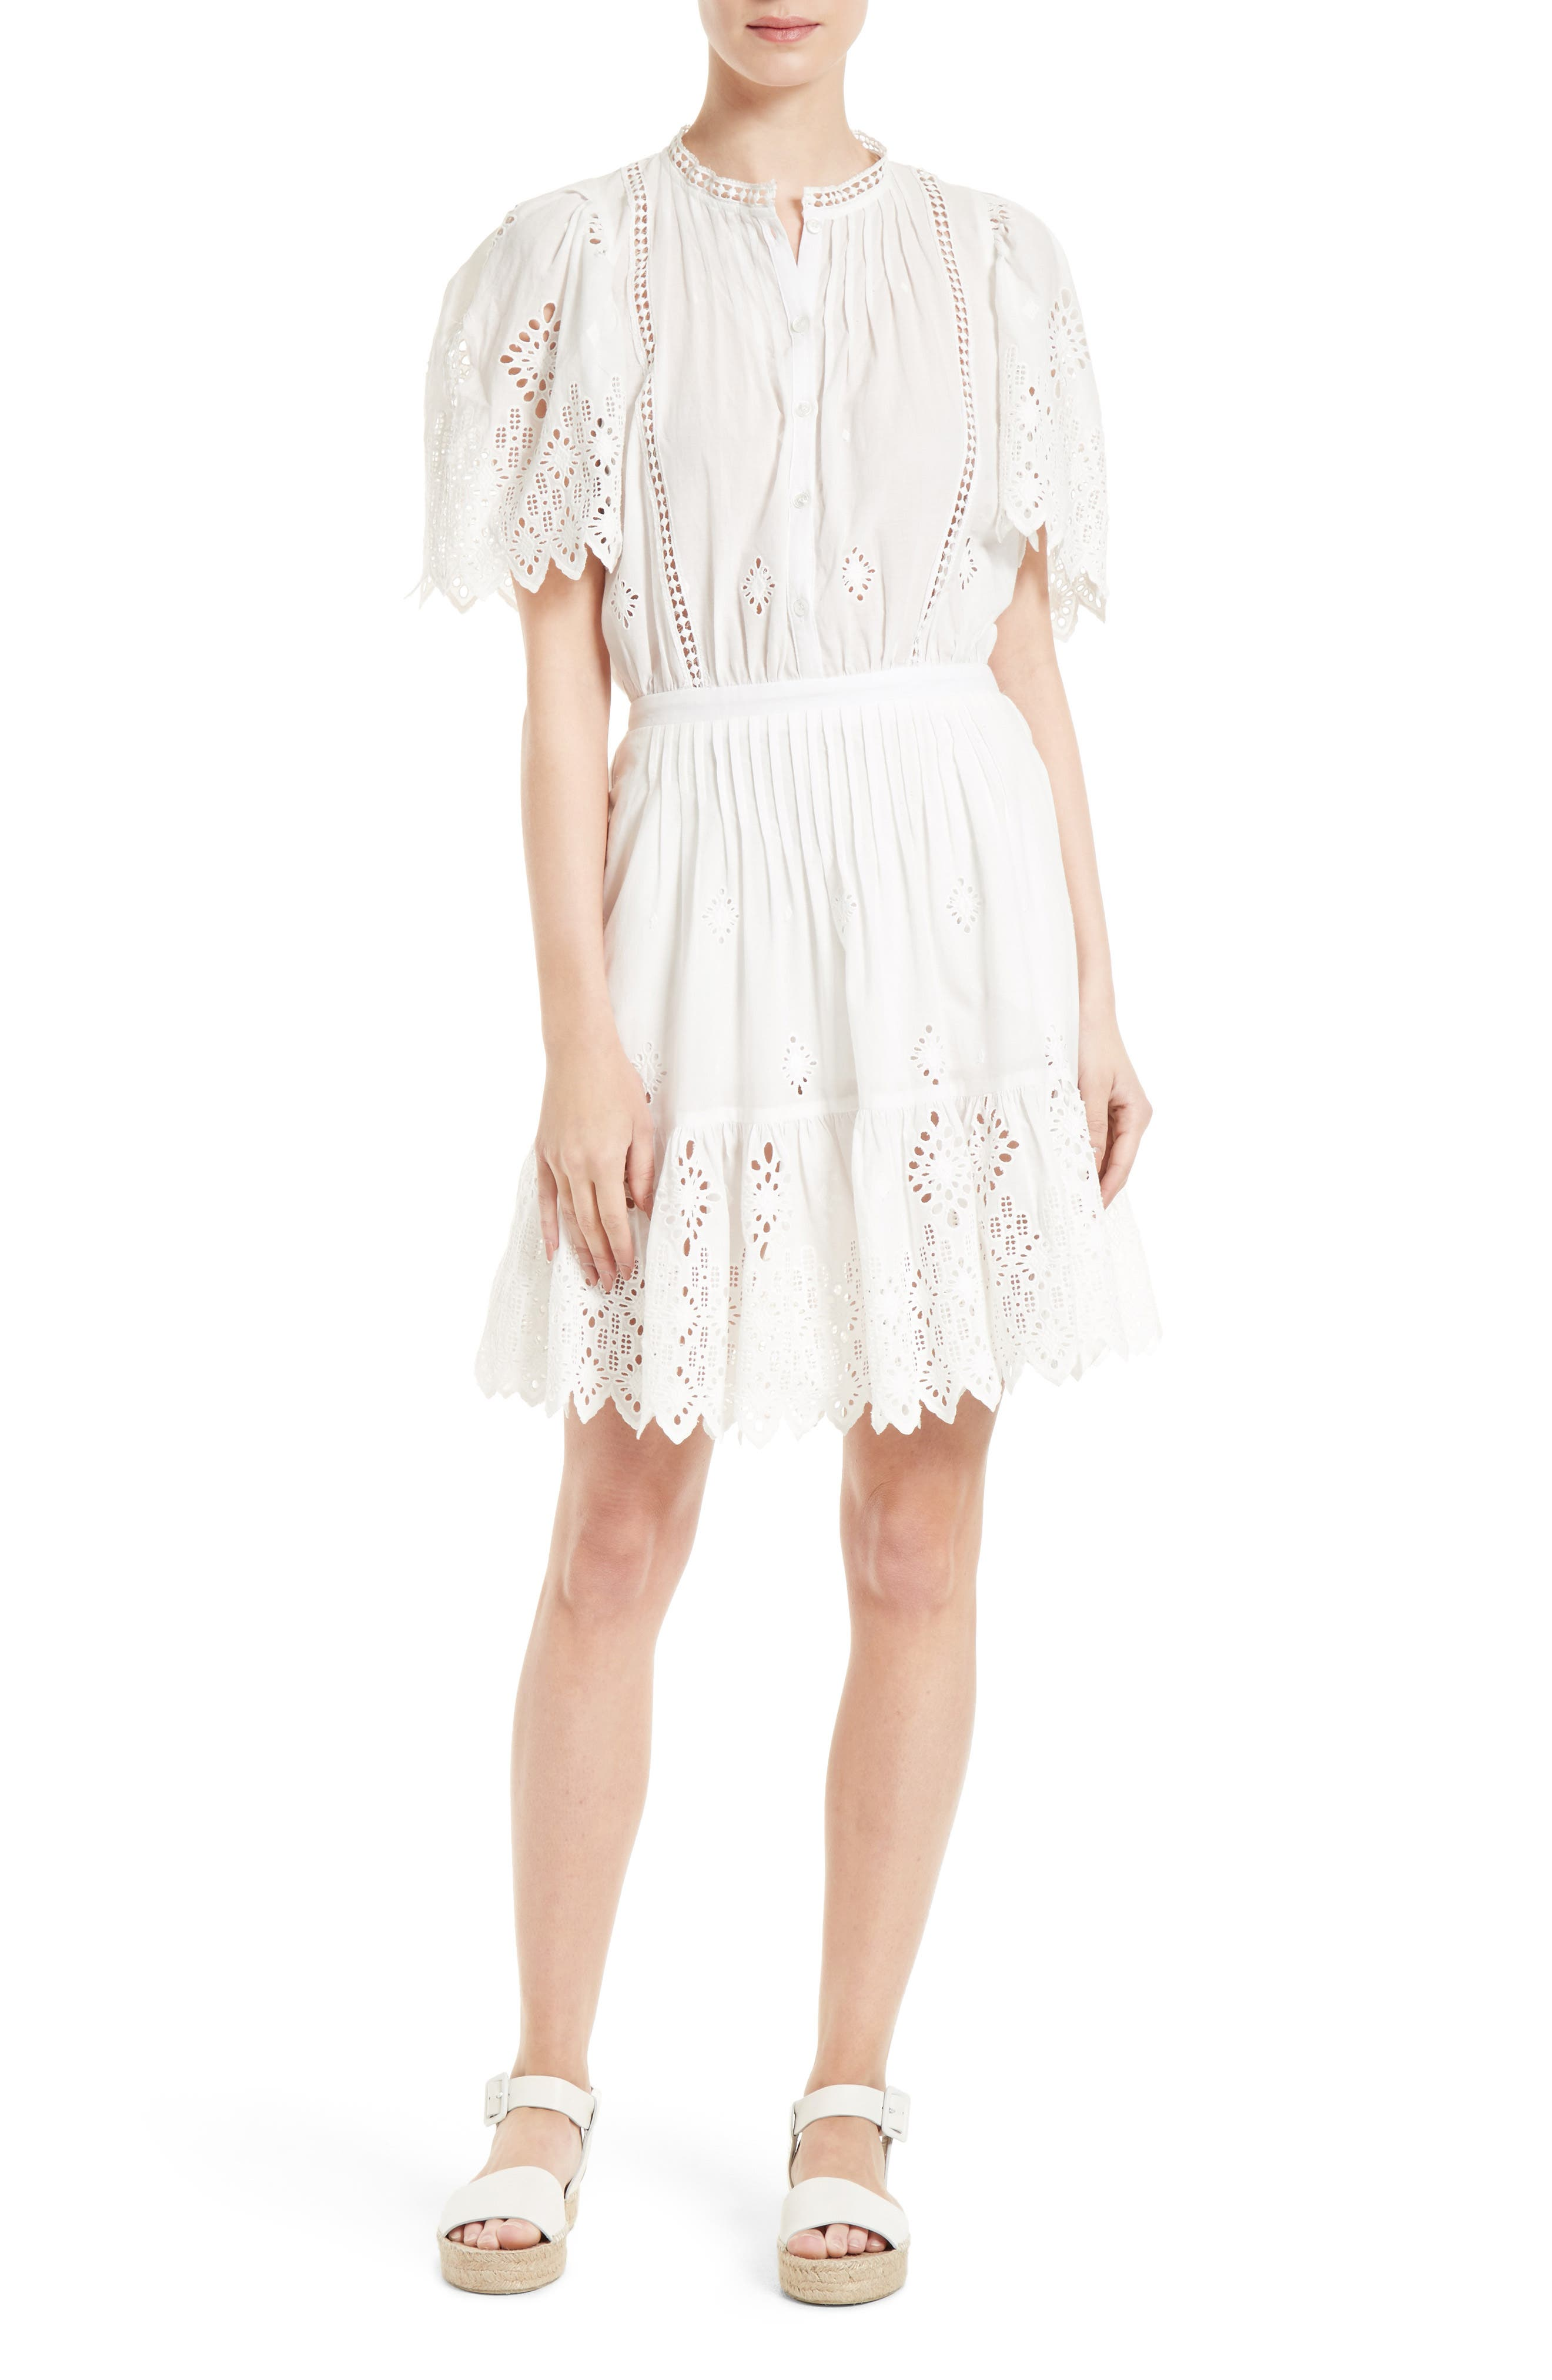 SEA Emma Pintuck Eyelet Dress